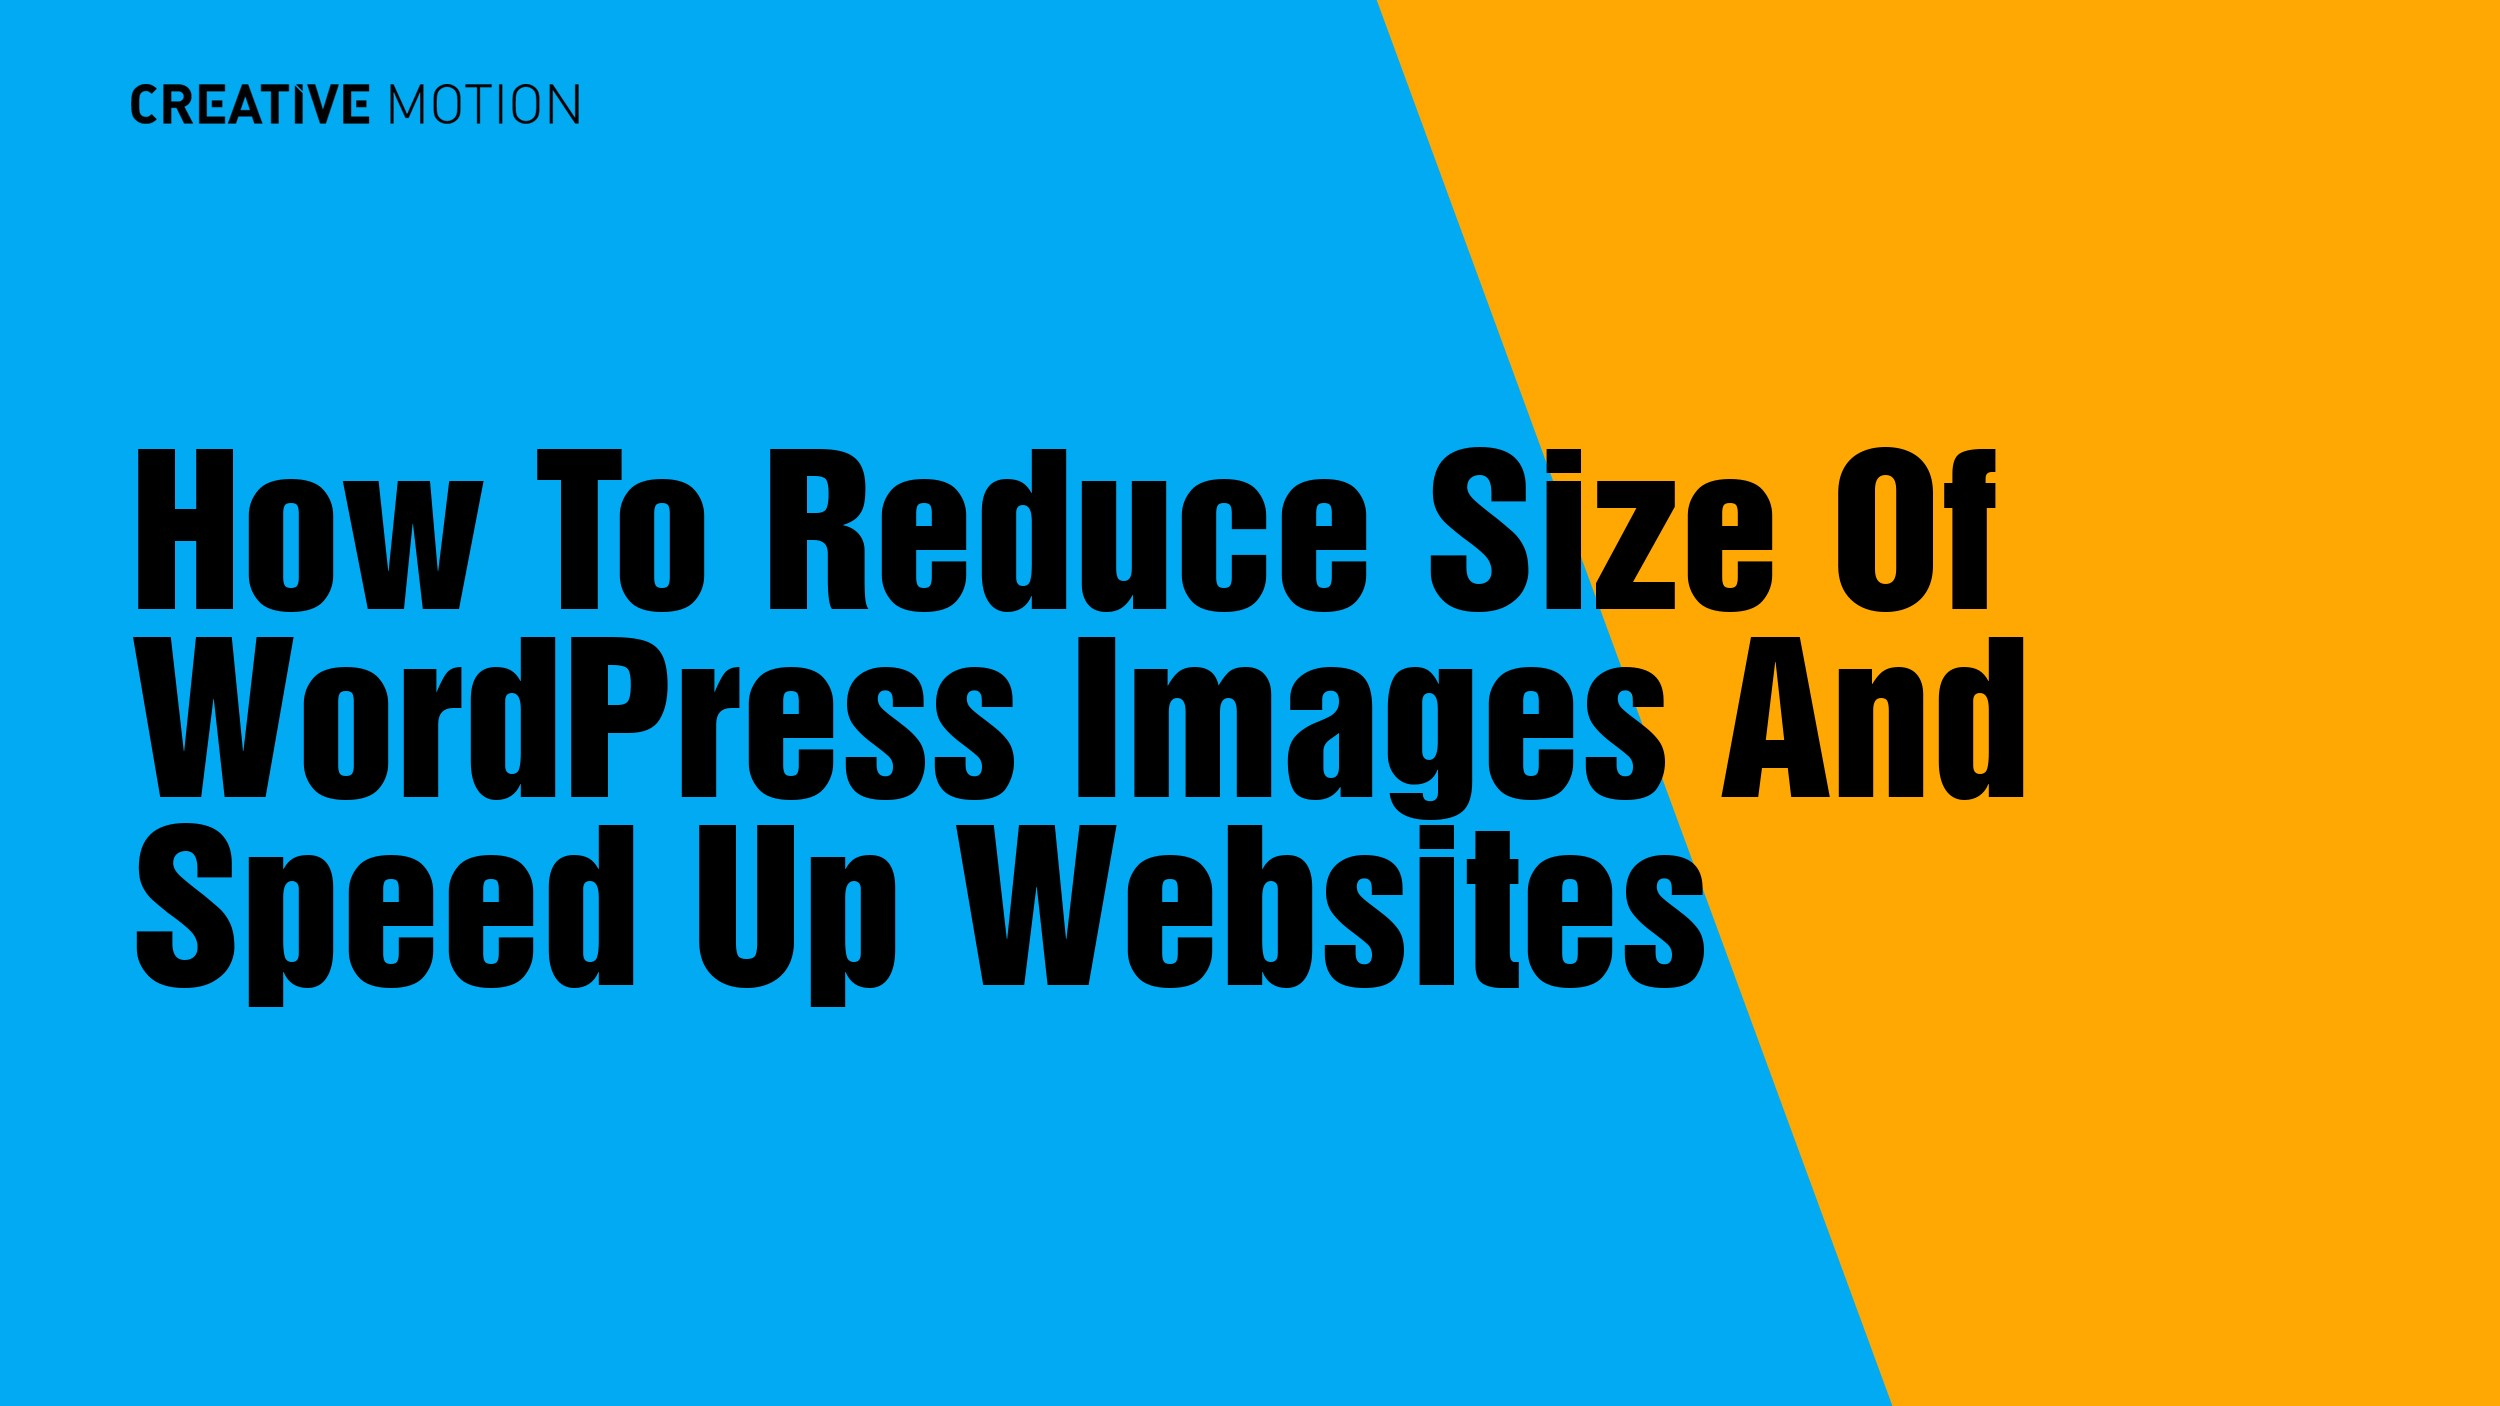 How To Reduce Size Of WordPress Images And Speed Up Websites